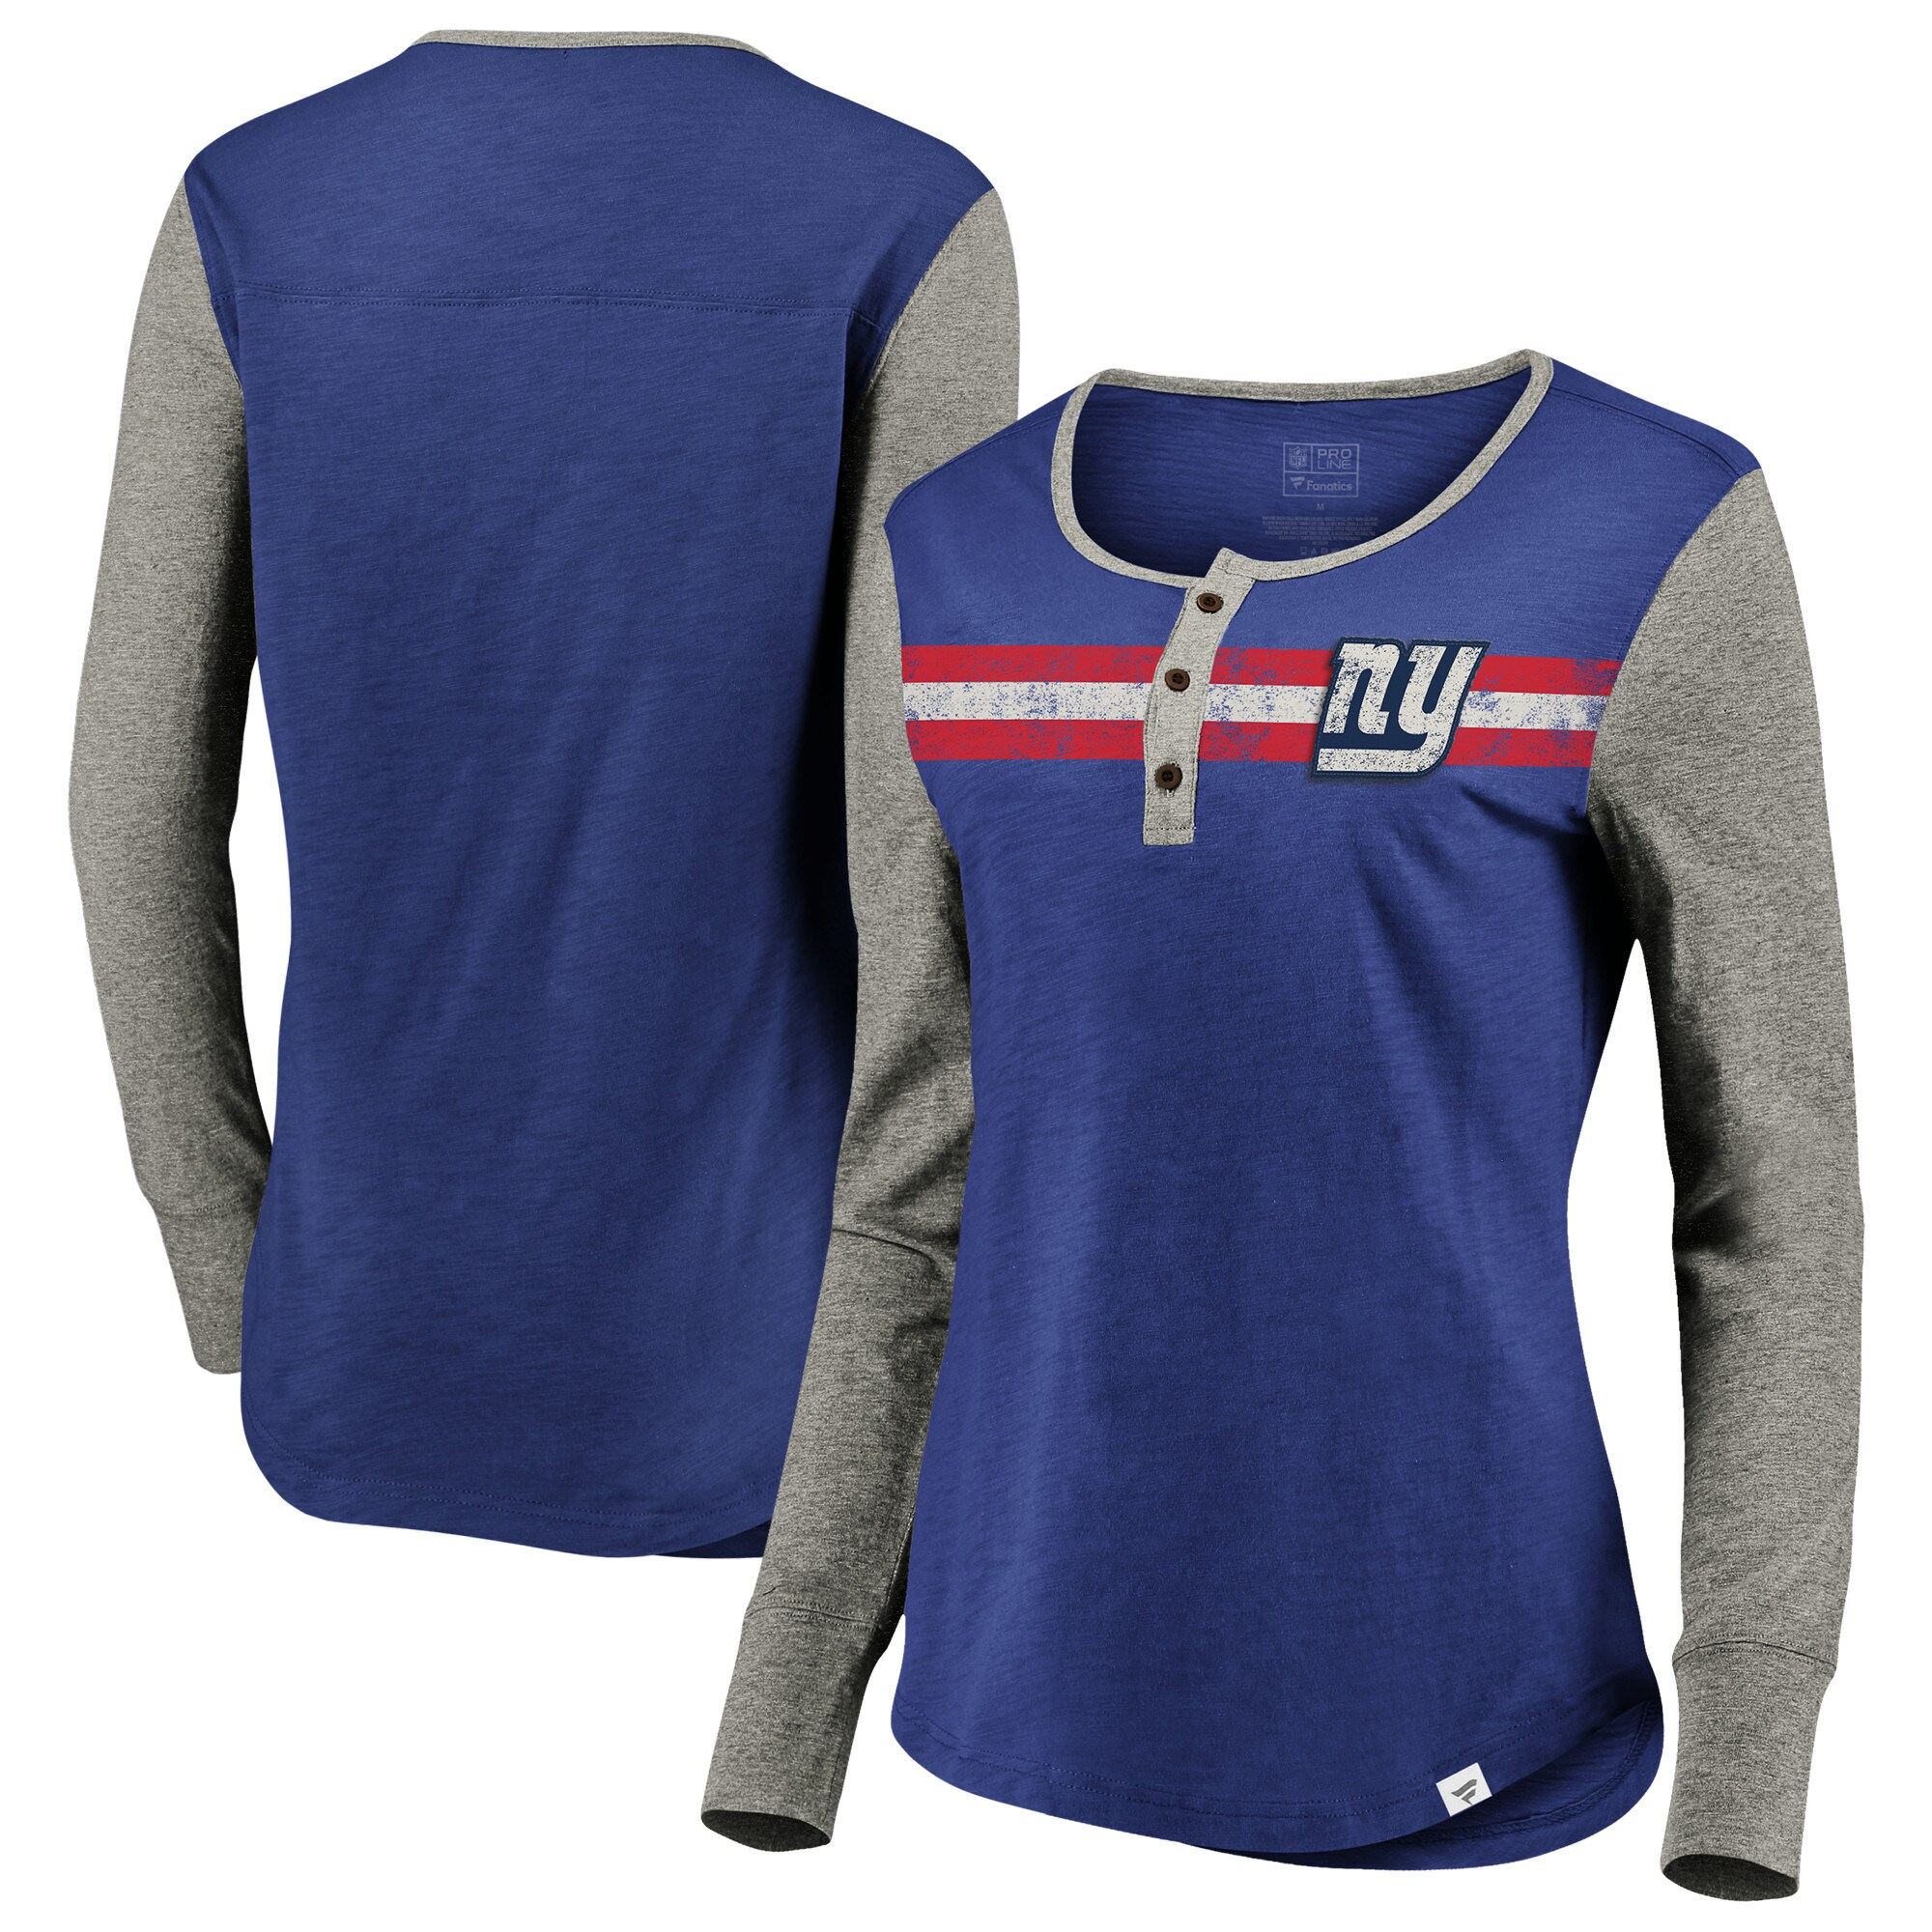 New York Giants NFL Pro Line by Fanatics Branded Women's Plus Size Long Sleeve Henley T-Shirt - Royal/Heathered Gray